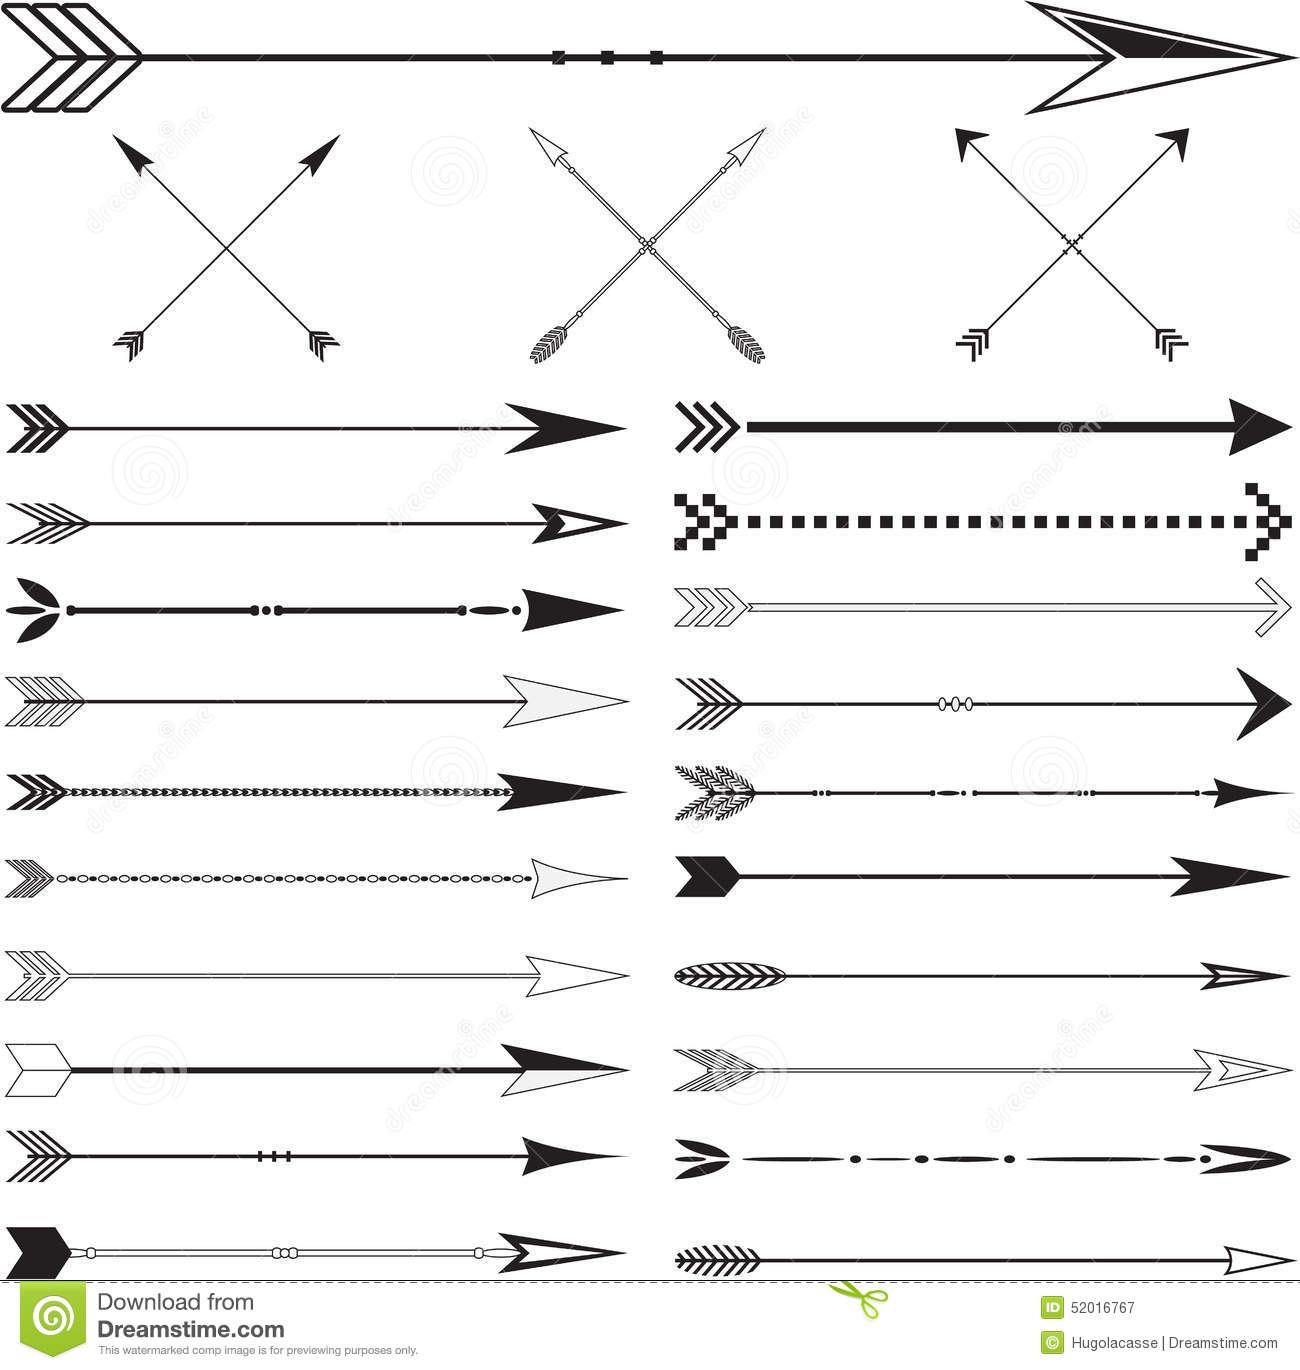 Arrow clipart free tribal picture library download Tribal arrow clipart free - ClipartFest picture library download